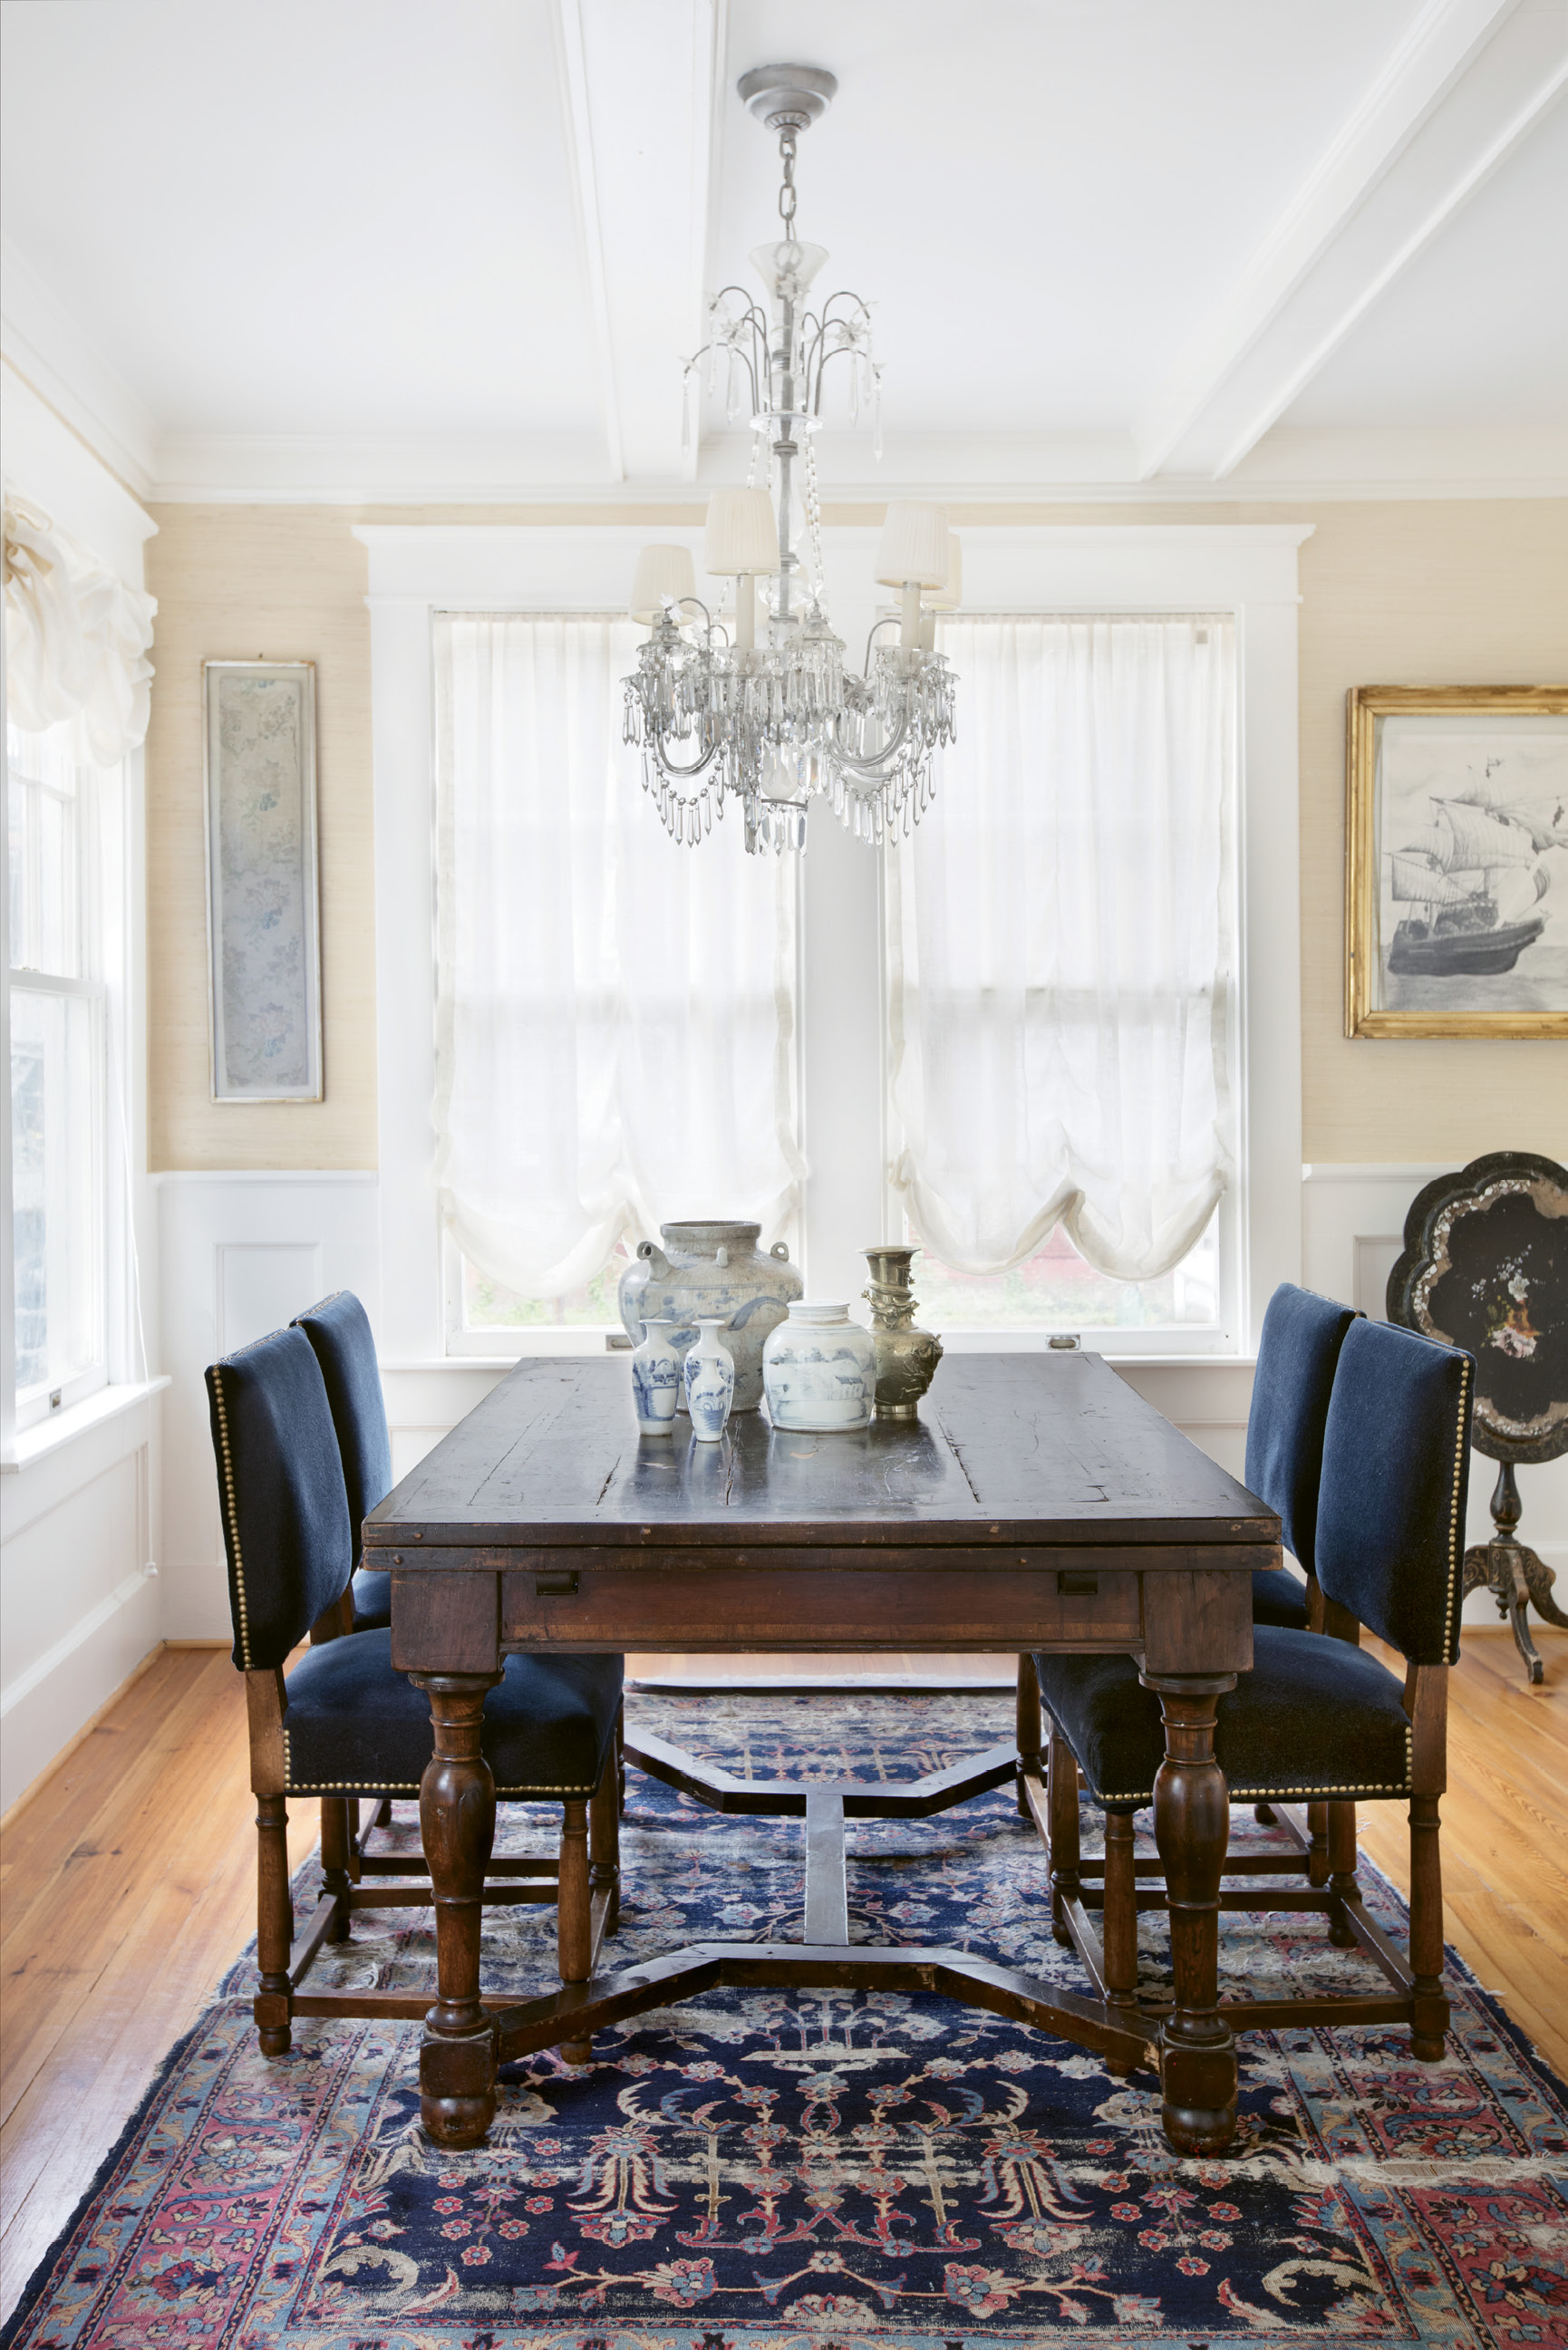 In the Navy: Deep blues and neutrals set the tone in the dining room, where the chairs are upholstered in blue mohair. The artwork includes a framed Chinese embroidery remnant as well as a pencil drawing of a naval ship that Melvin completed in high school. Debbie found it during one of their moves and had it framed in honor of his years of Navy service.